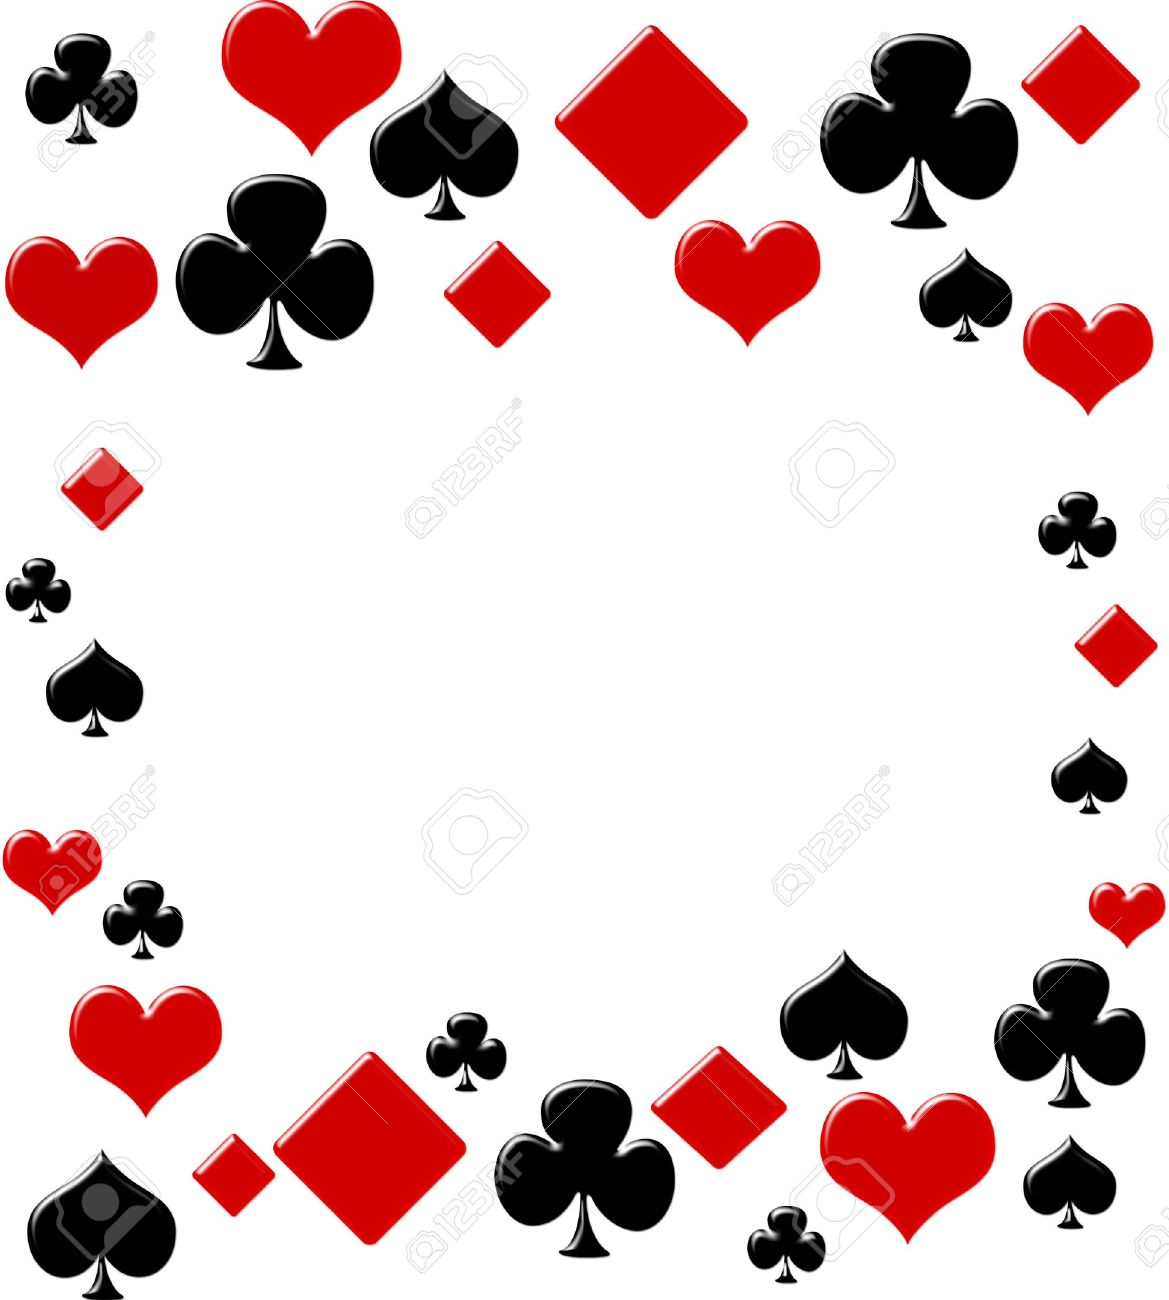 Poker Cards Hearts Heart Suit Four Card Suits